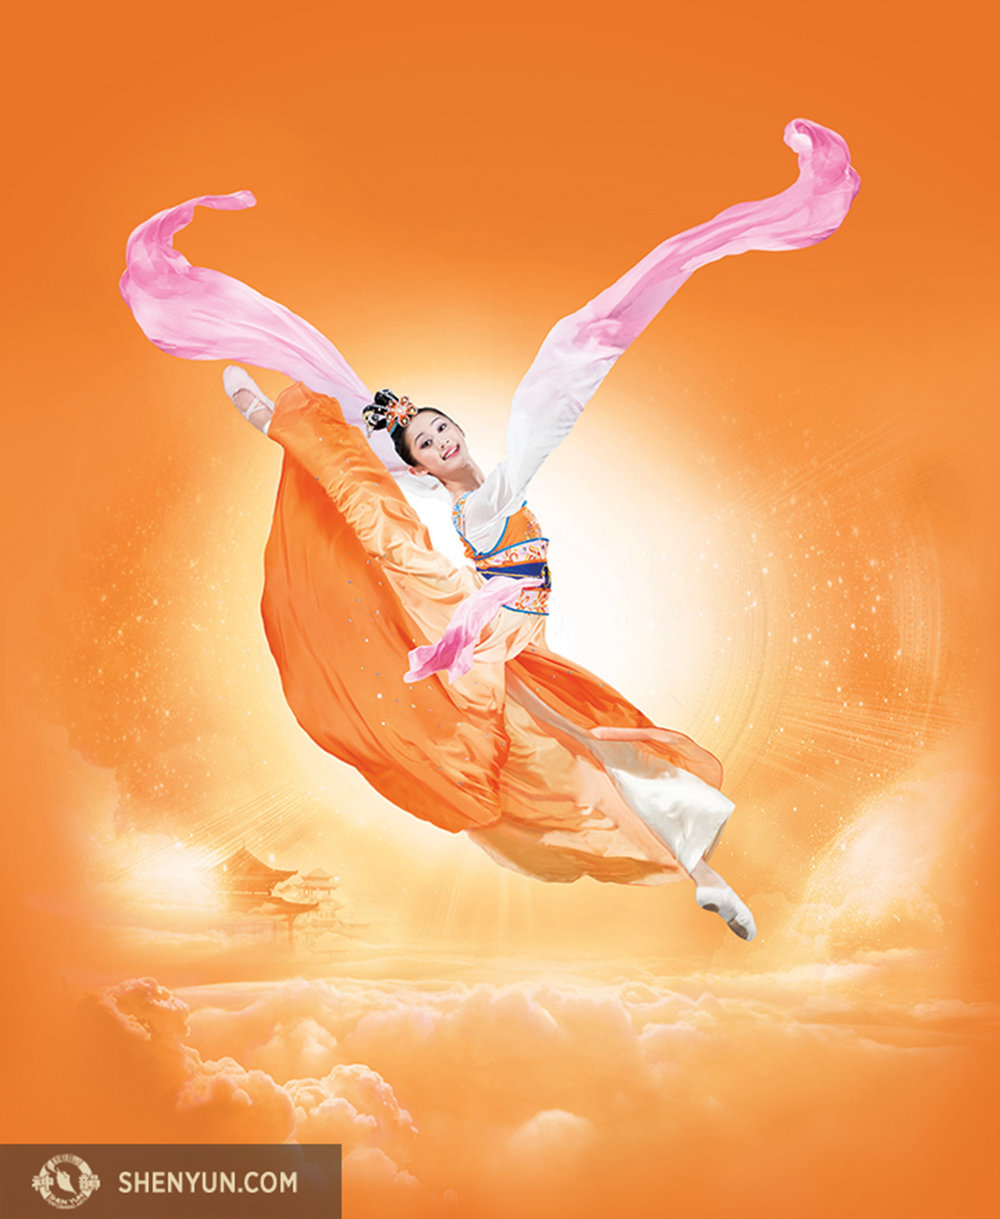 By focusing on her inner bearing, Wang transforms into celestial maidens that make the audience cry as much as smile. www.shenyun.com